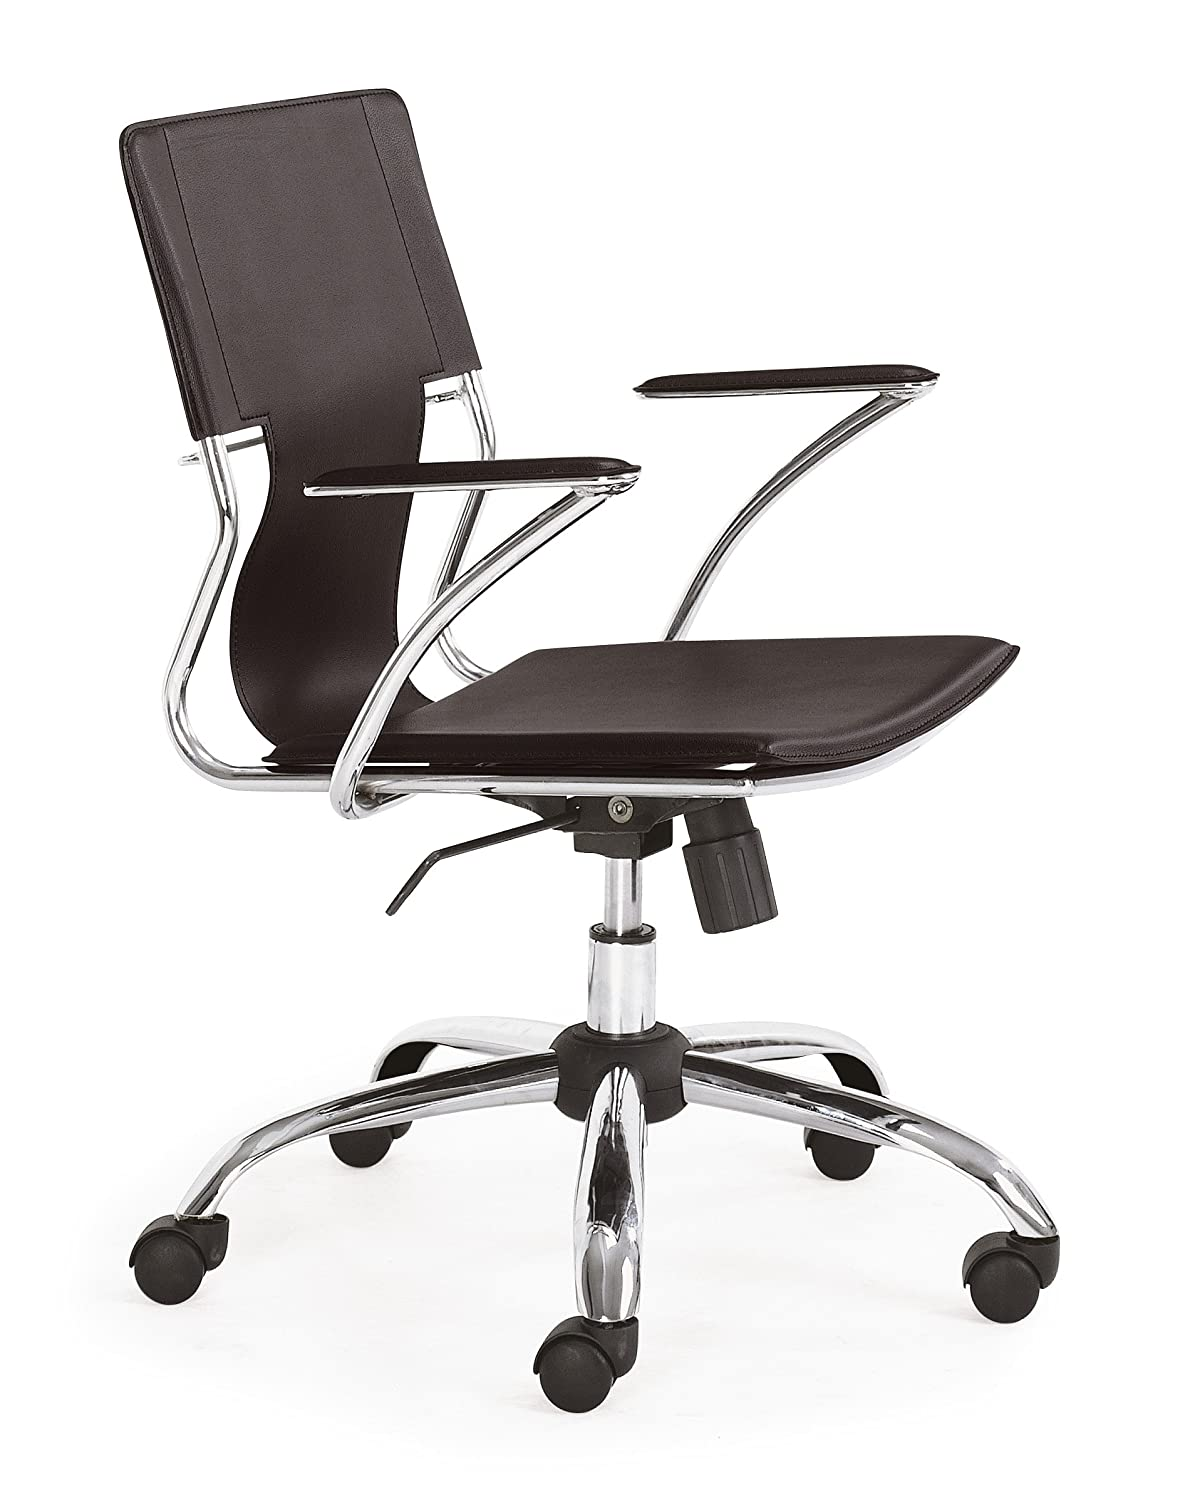 ZUO Trafico Office Chair, Black comforthigh quanlity office computer chair swivel lift ergonomic chair